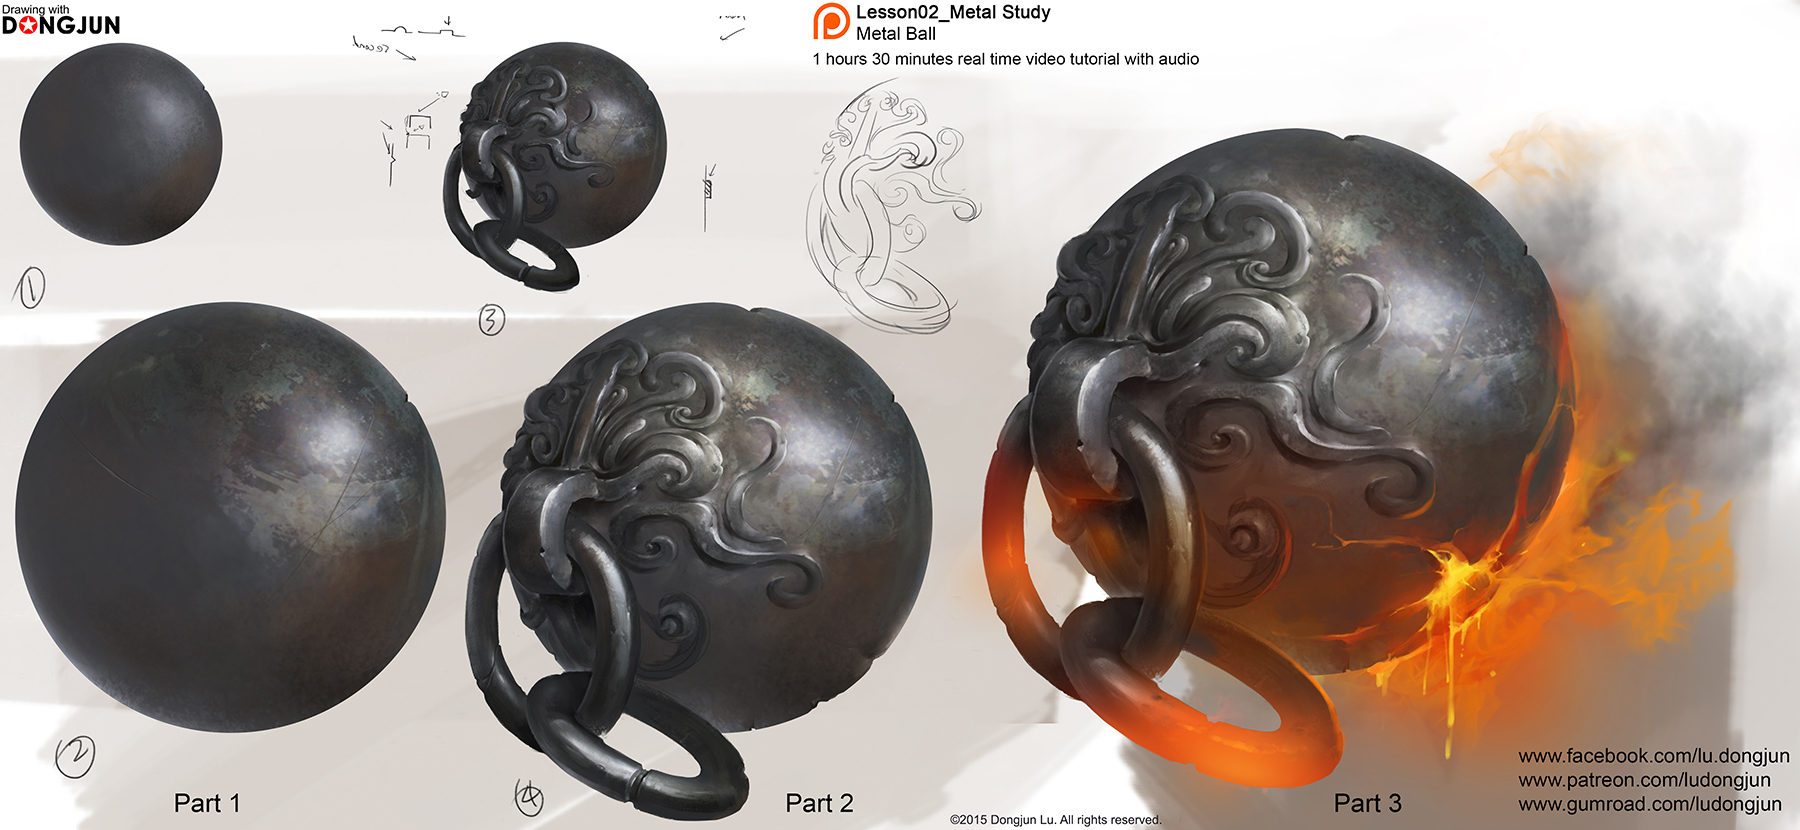 Lesson02_Metal Study_Metal Ball_small